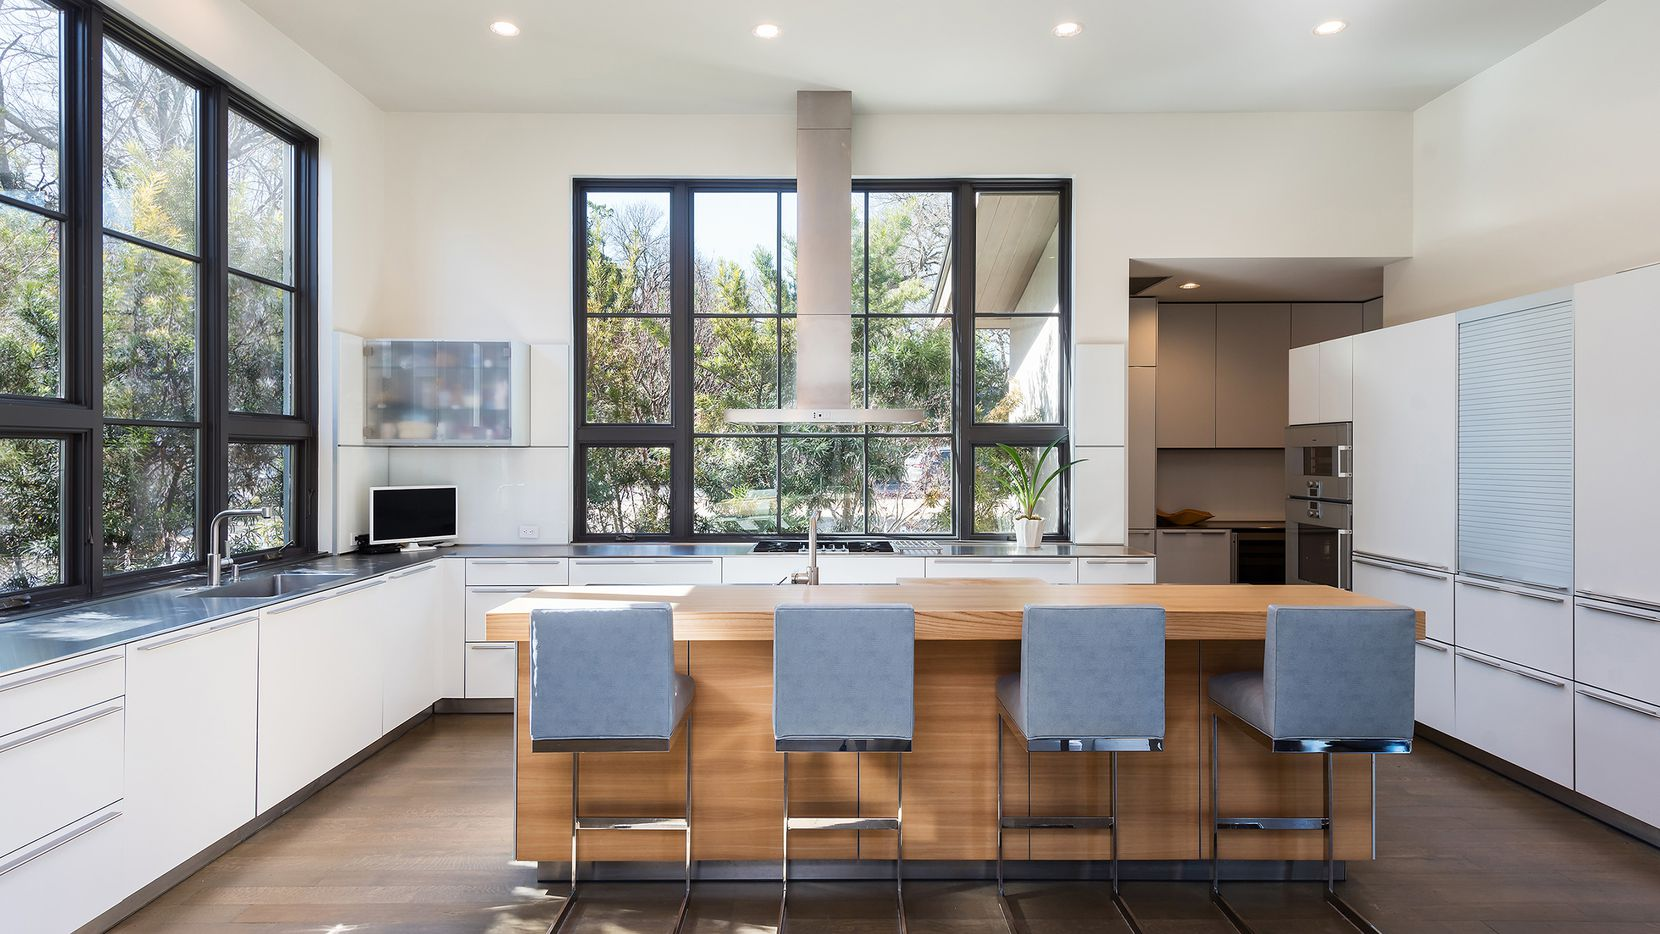 An open kitchen with clean lines such as this one in Bluffview is typical of transitional design in Dallas neighborhoods.